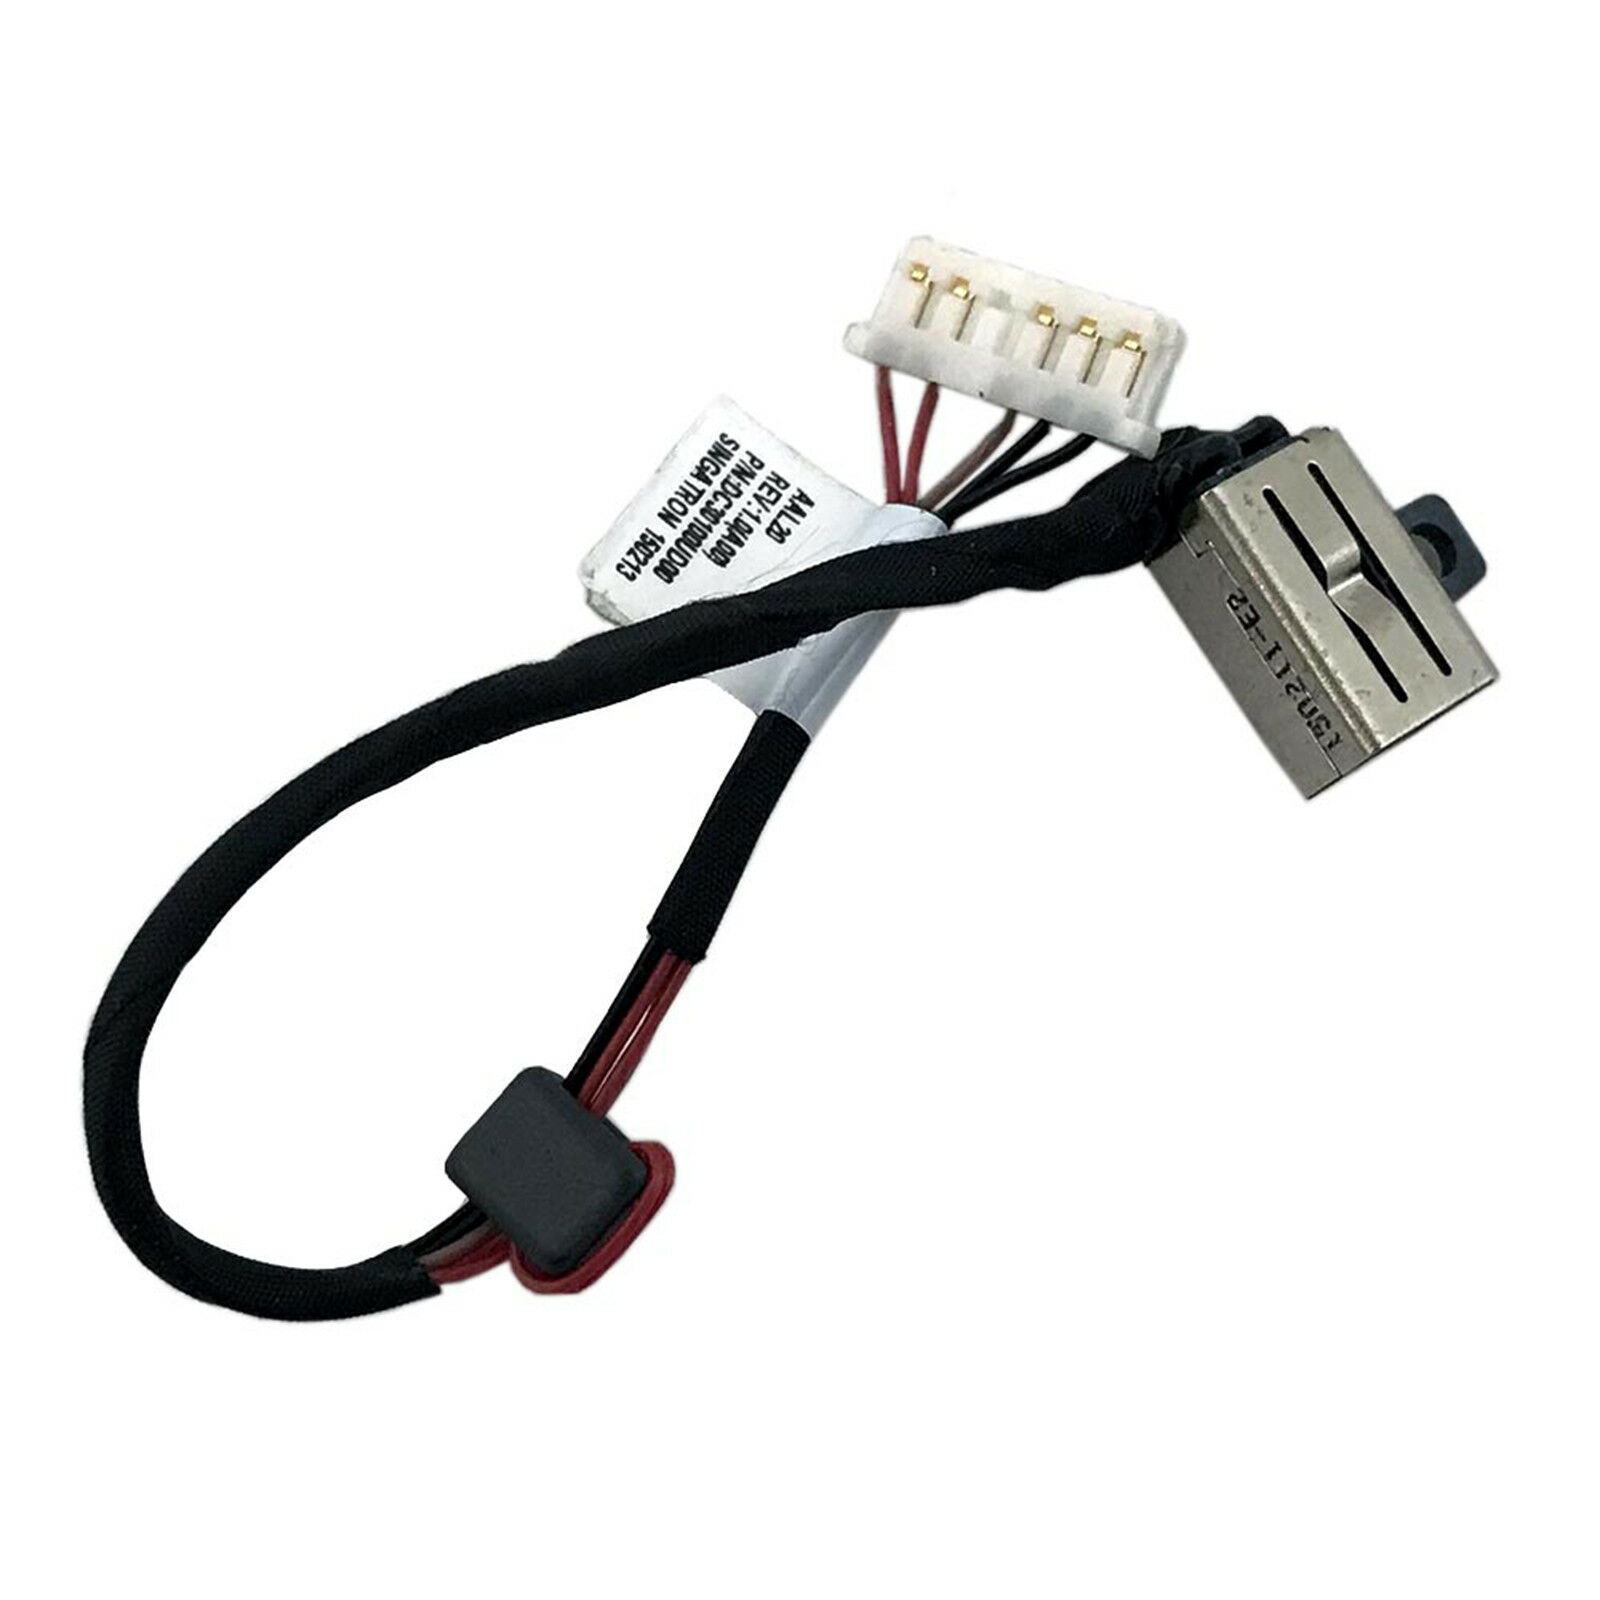 Dc Power Jack Harness Cable For Dell Inspiron 5559 5558 Kd4t9 Vostro Plug To Wire Core Buy Norton Secured Powered By Verisign